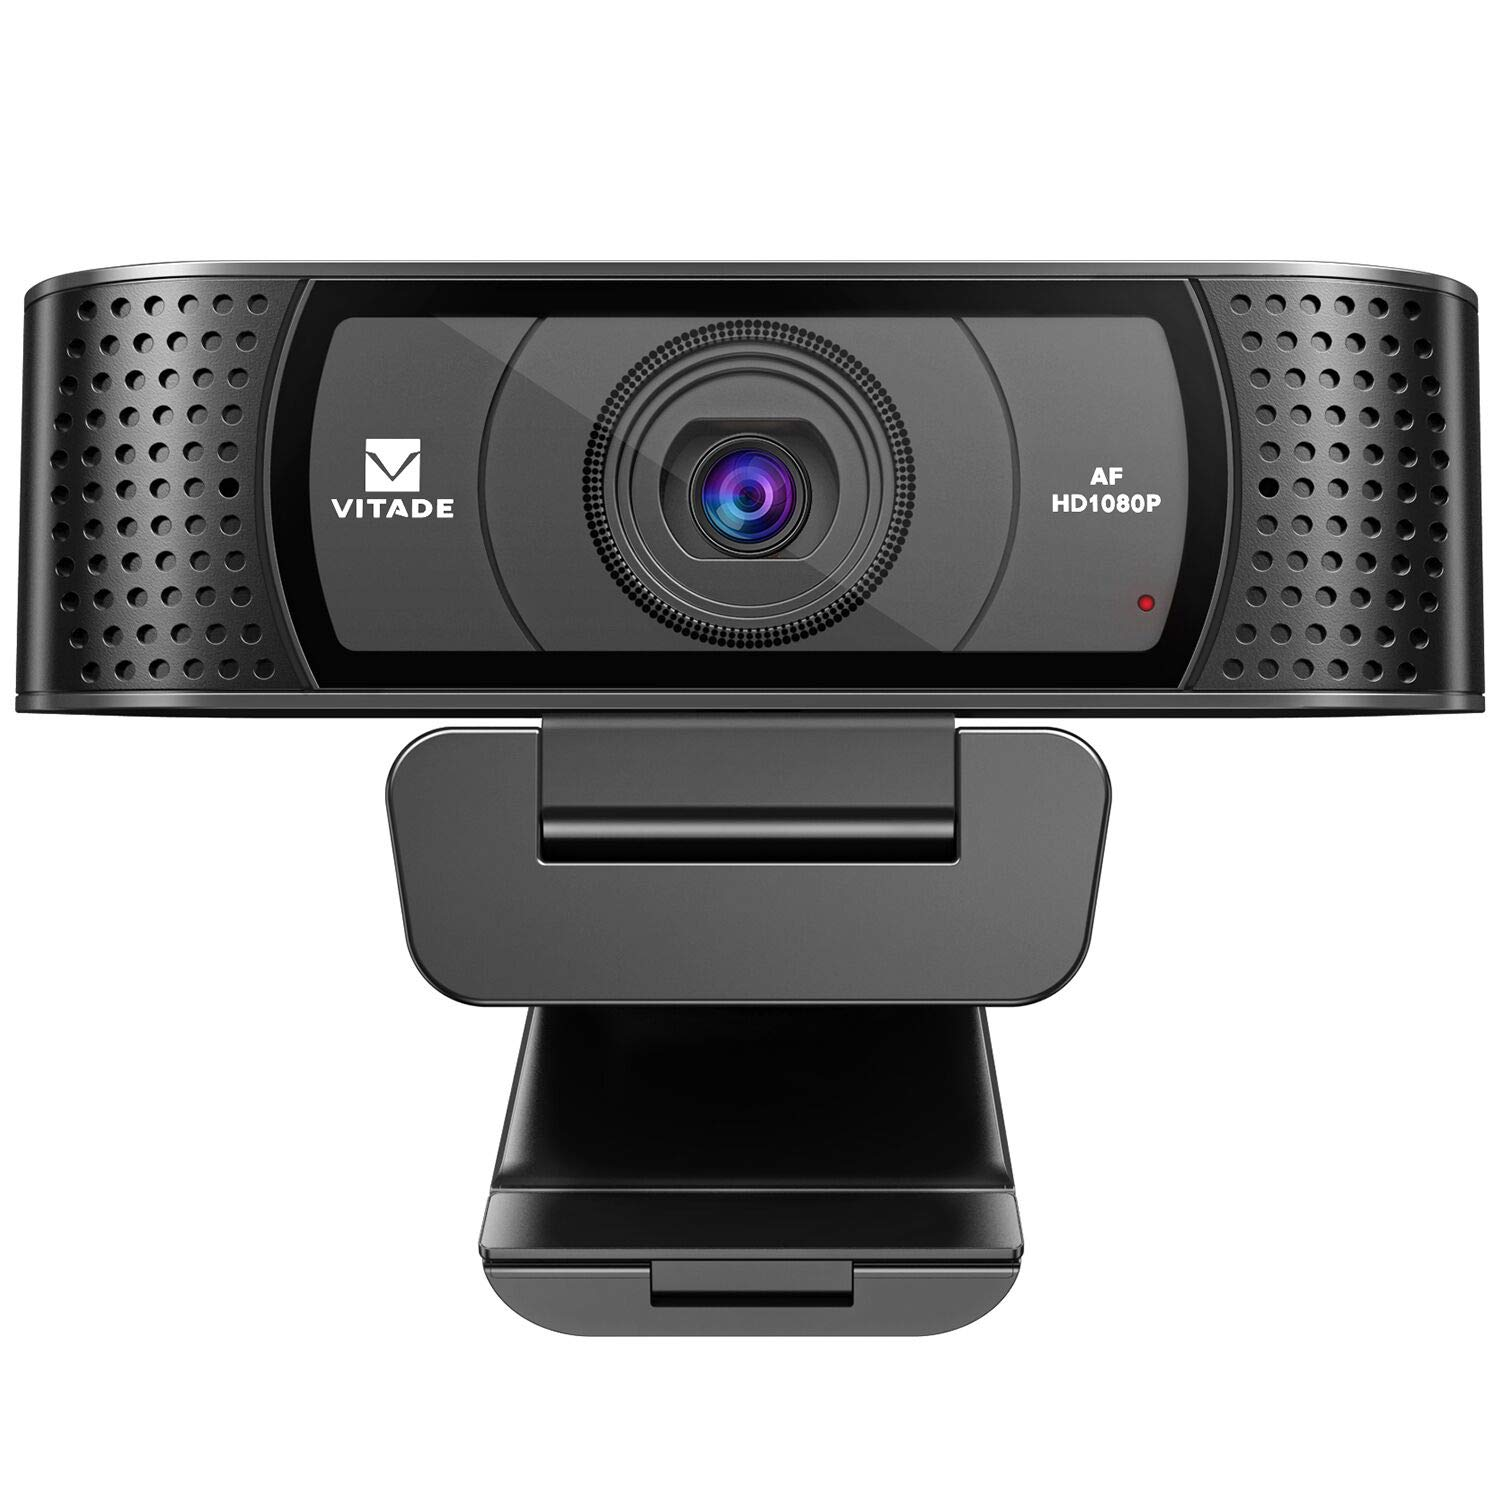 HD Webcam 1080P with Microphone & Cover Slide, Vitade 928A Pro USB Computer Web Camera Video Cam for Streaming Gaming Conferencing Mac Windows PC Laptop Desktop Xbox Skype OBS Twitch YouTube Xsplit by Vitade